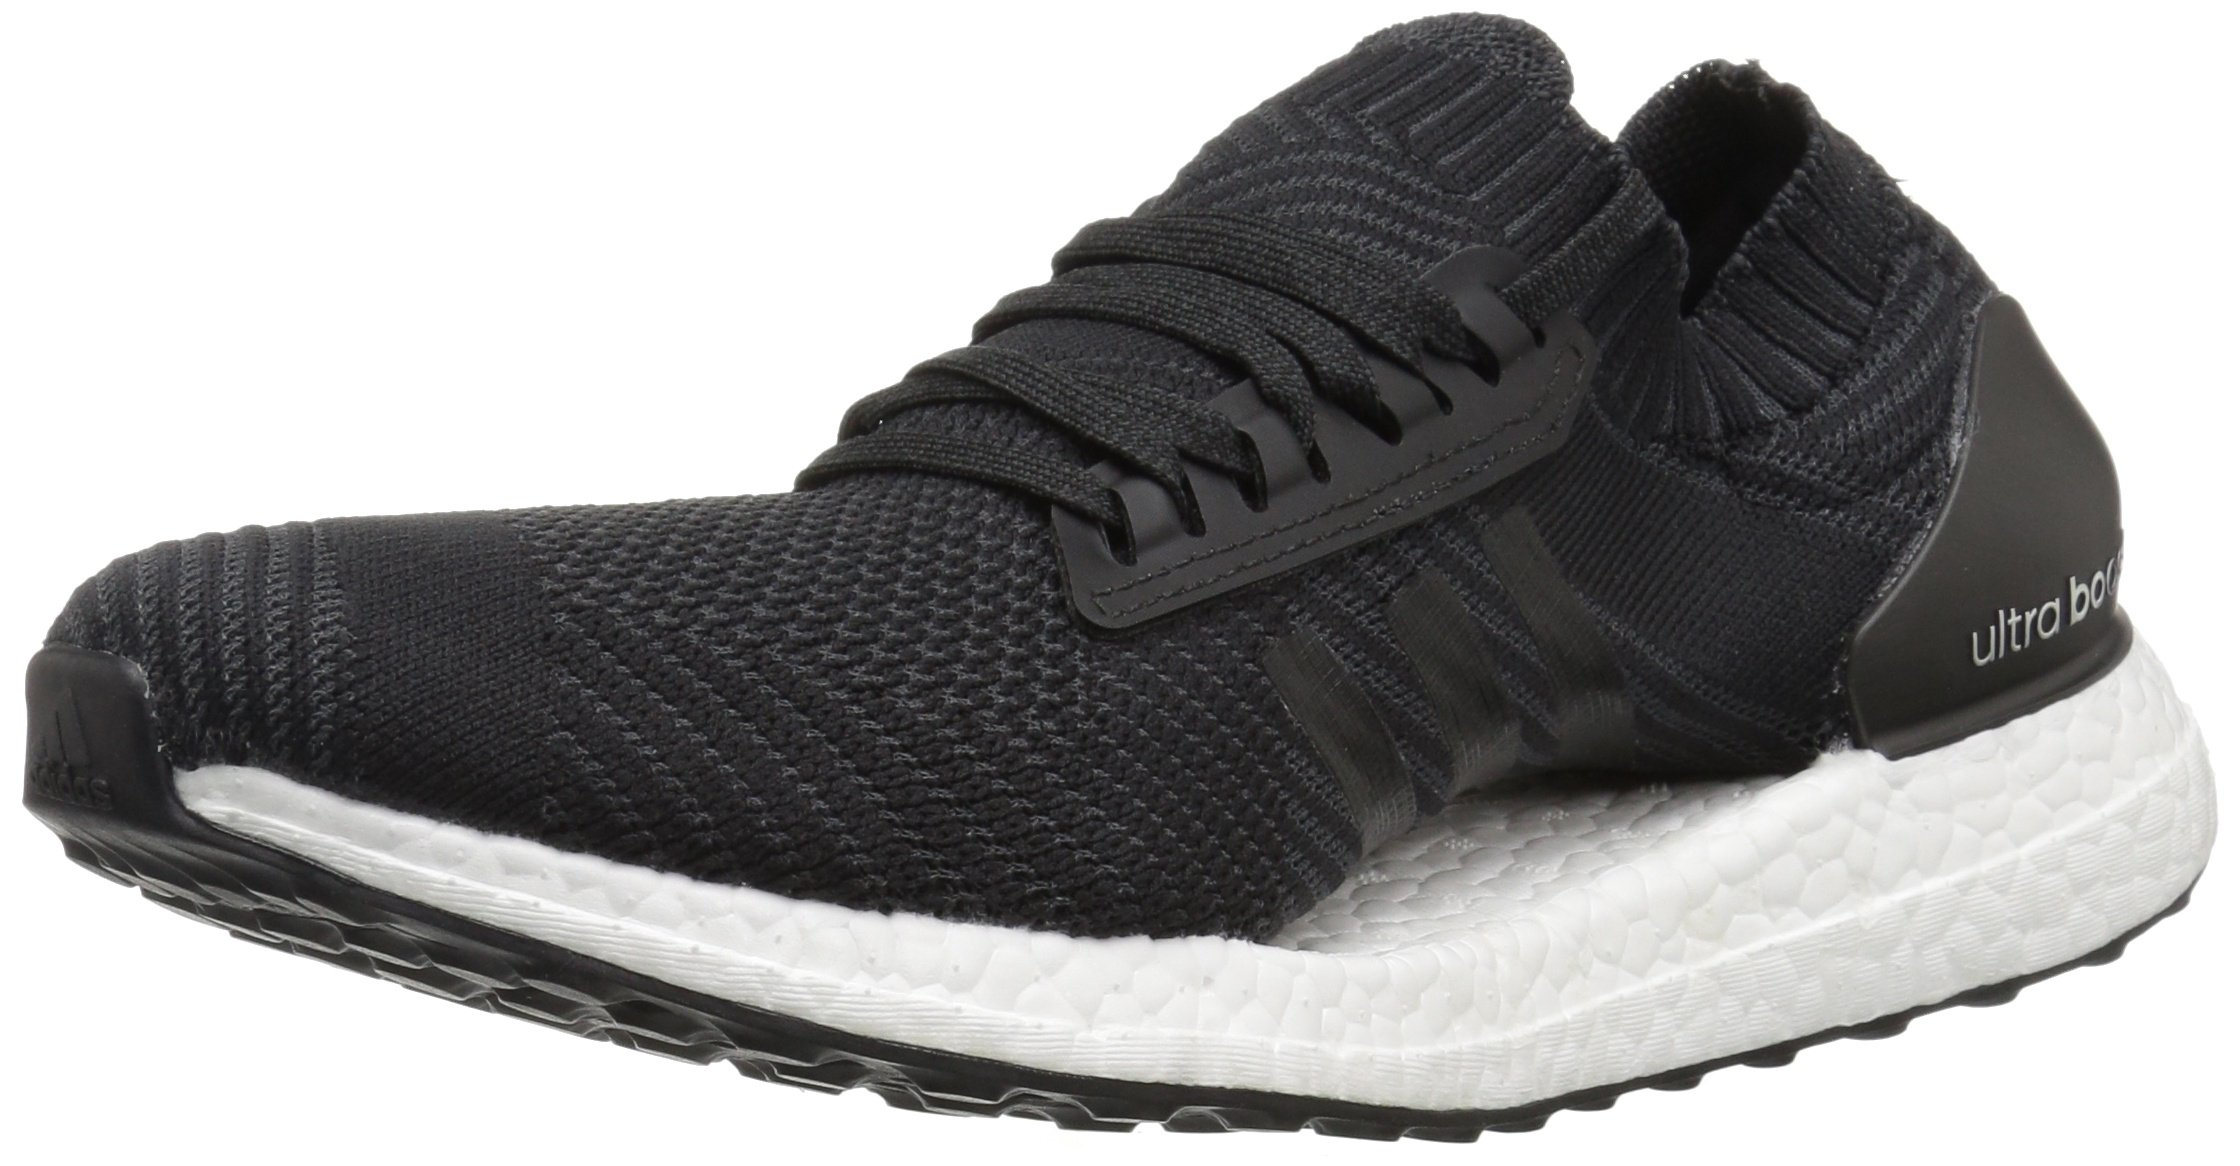 half off 0434b a7dfa Galleon - Adidas Womens Ultraboost X Running Shoe, CarbonCrystal Whitecore  Black, 7.5 M US